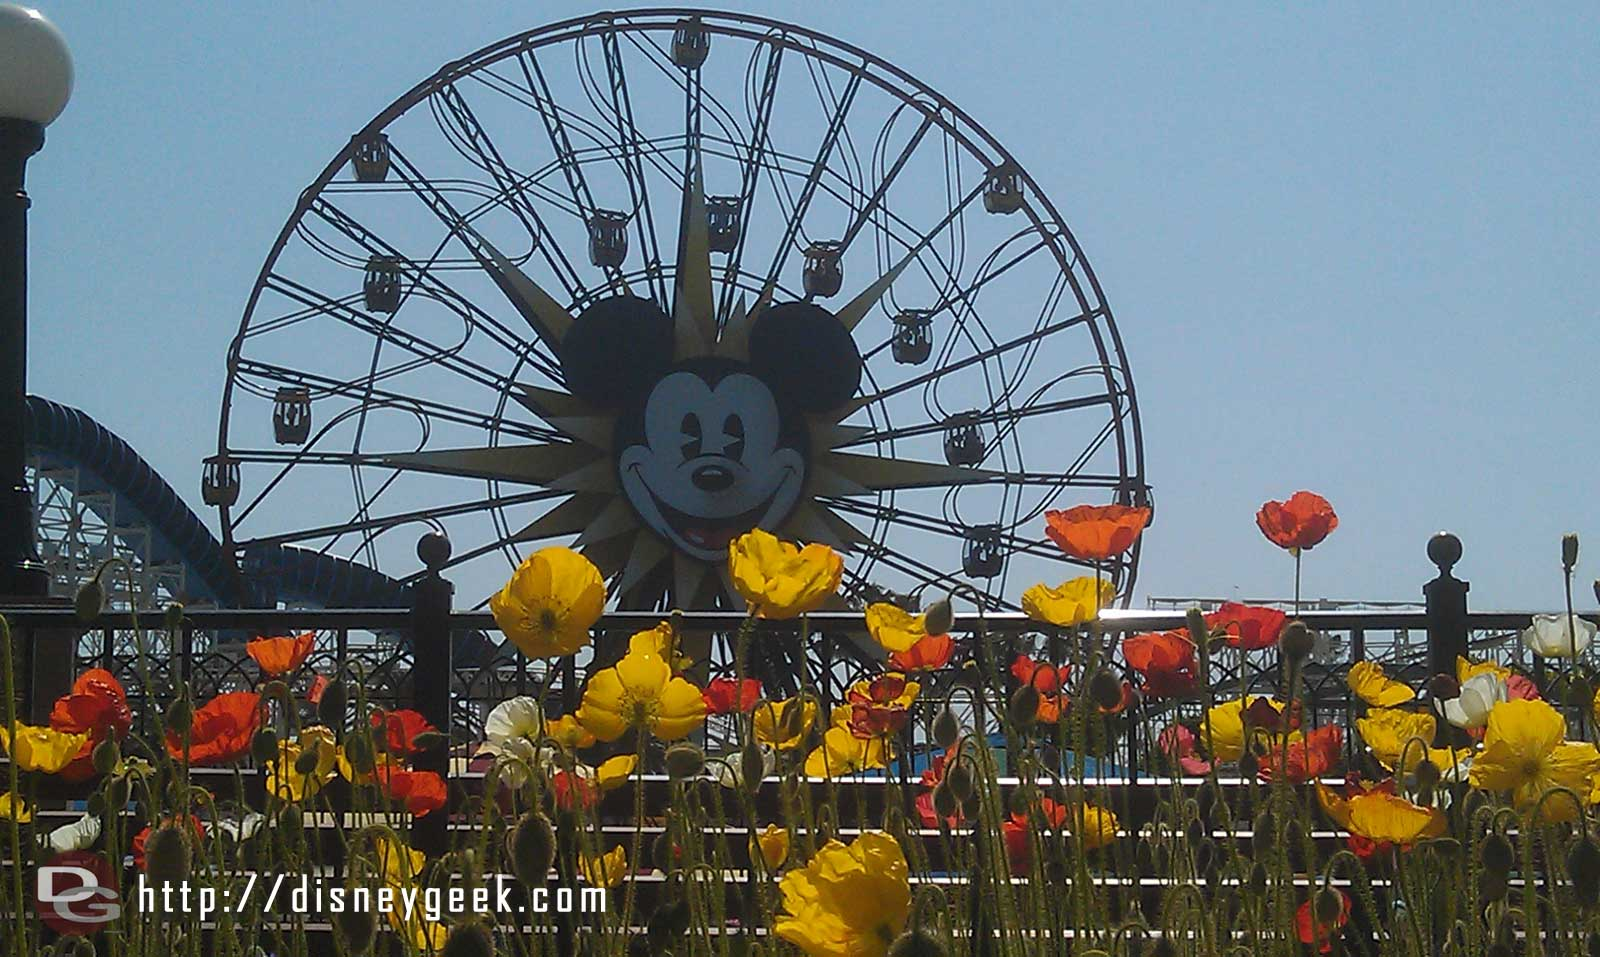 Mickeys Fun Wheel on this nice spring afternoon